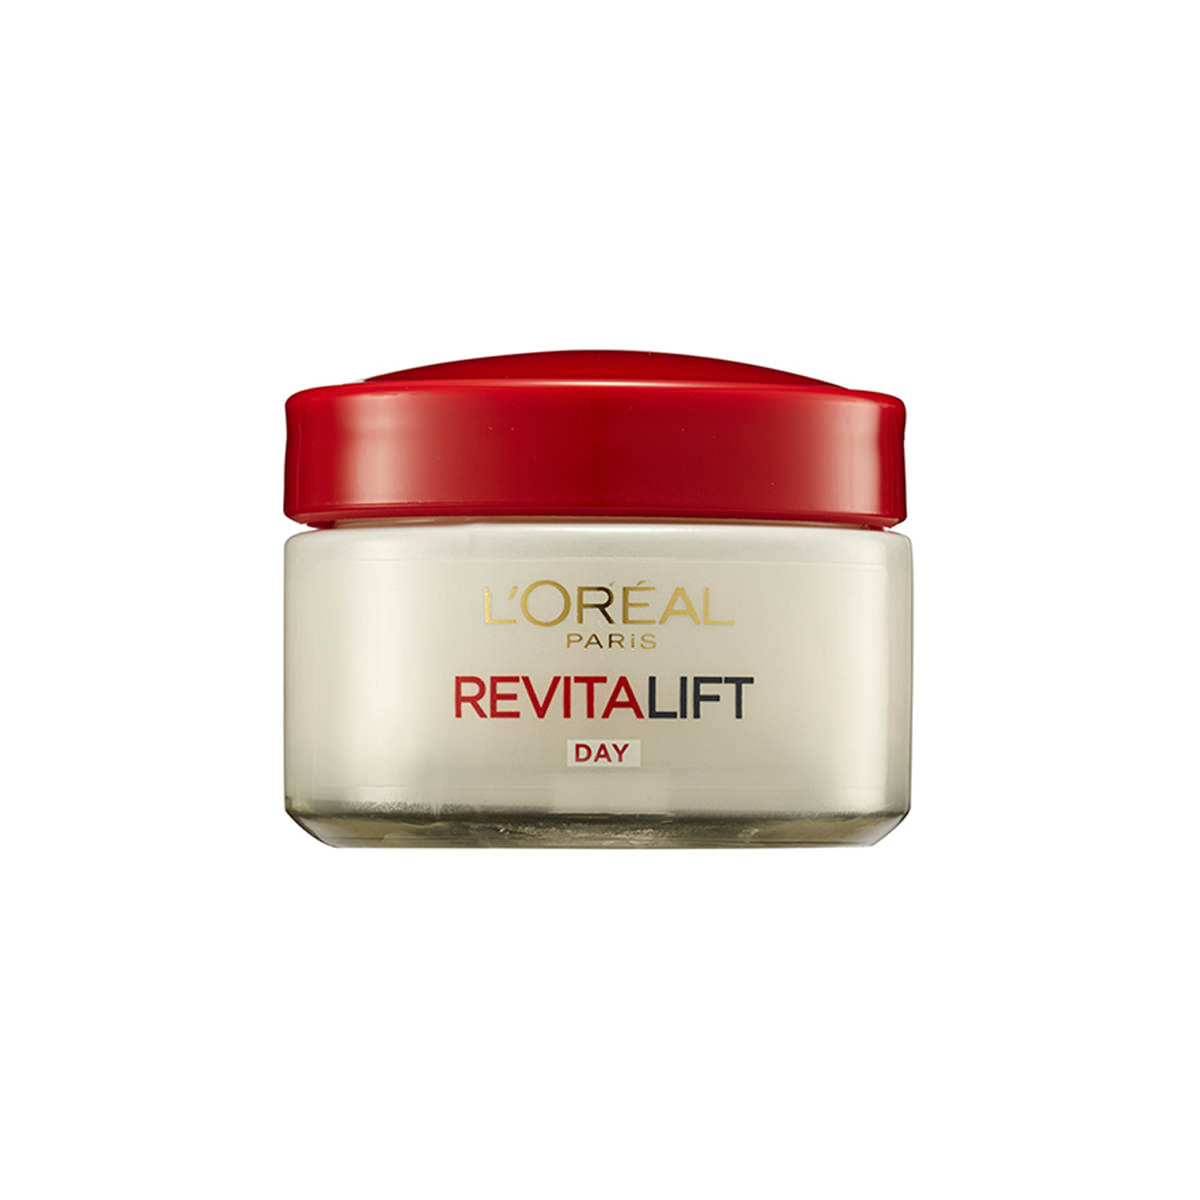 L'oreal Paris - Revitalift Dermalift Day Cream SPF 23 (20 ml)_sfw (1)